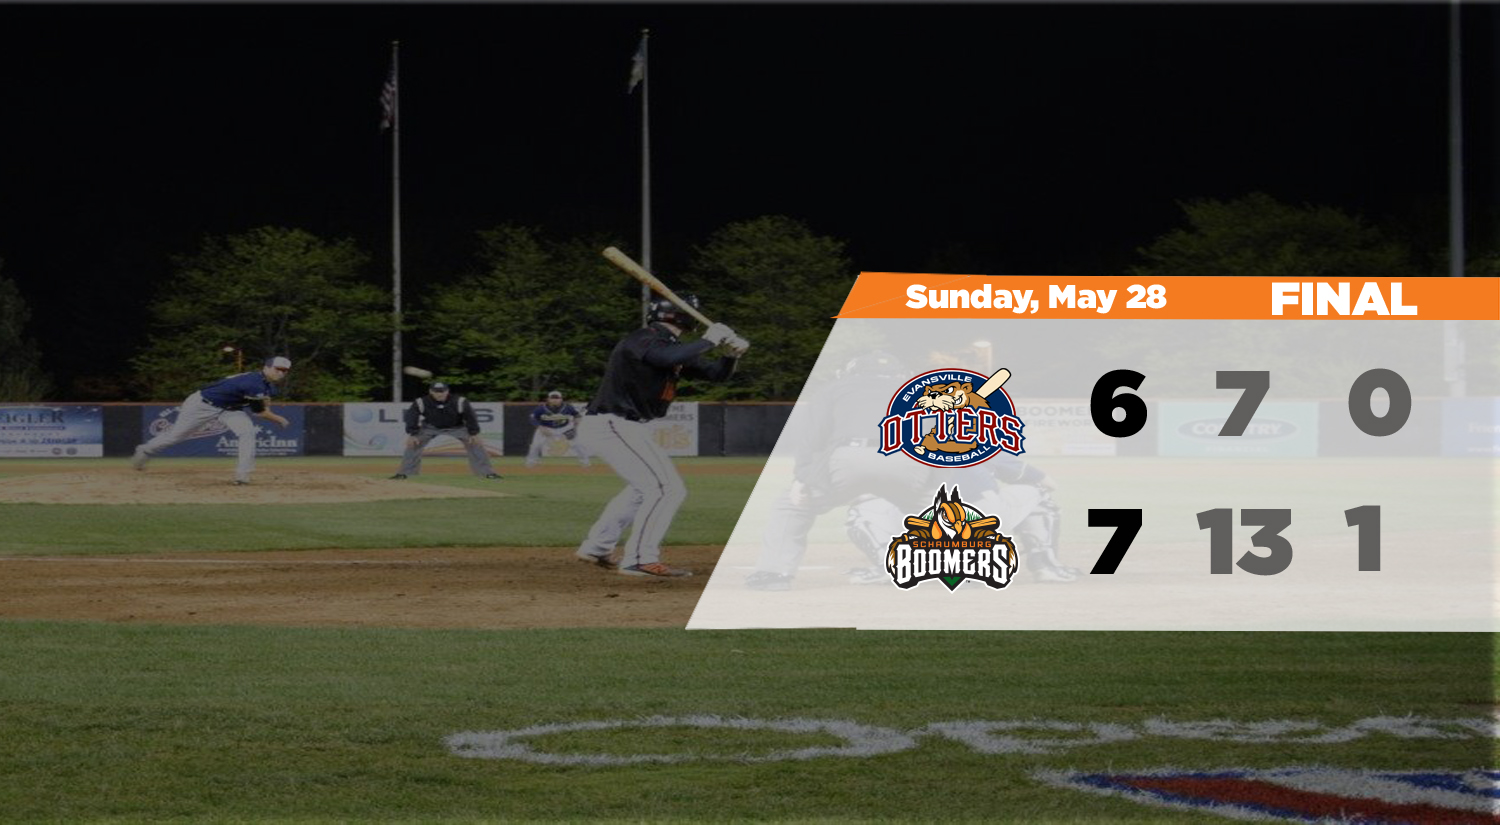 Walkoff Single Propels Boomers to Fourth Straight